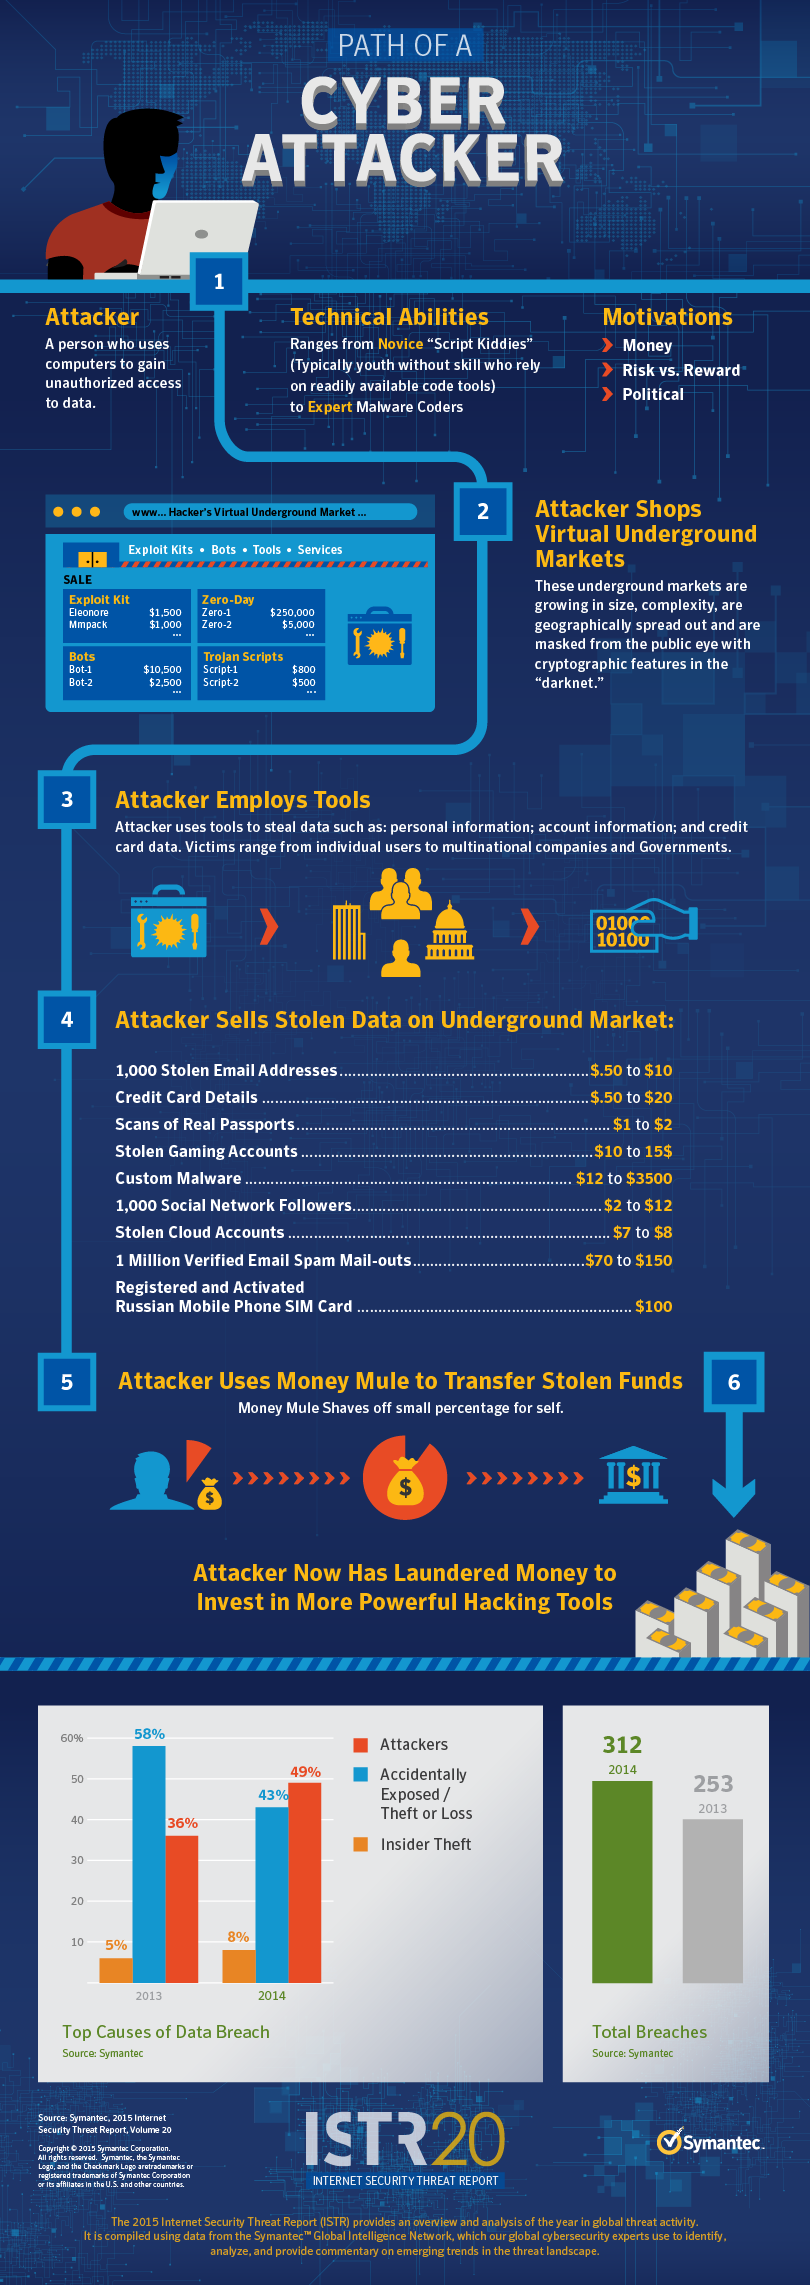 Symantec Path of a Cyber Attacker